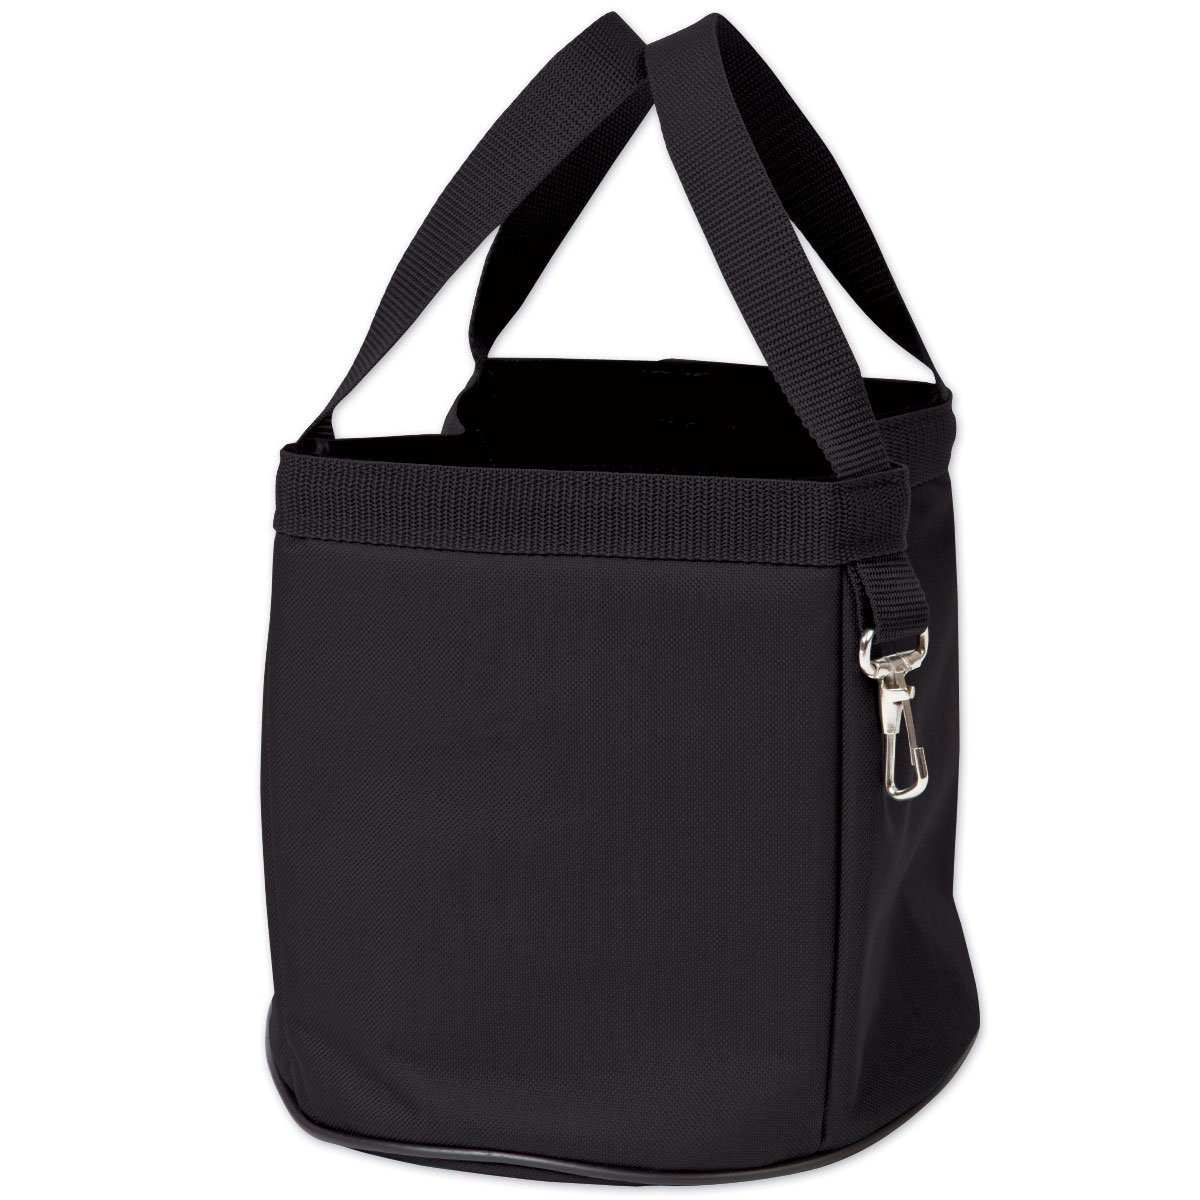 Tough-1 Groom Caddy Tote Black by Tough-1